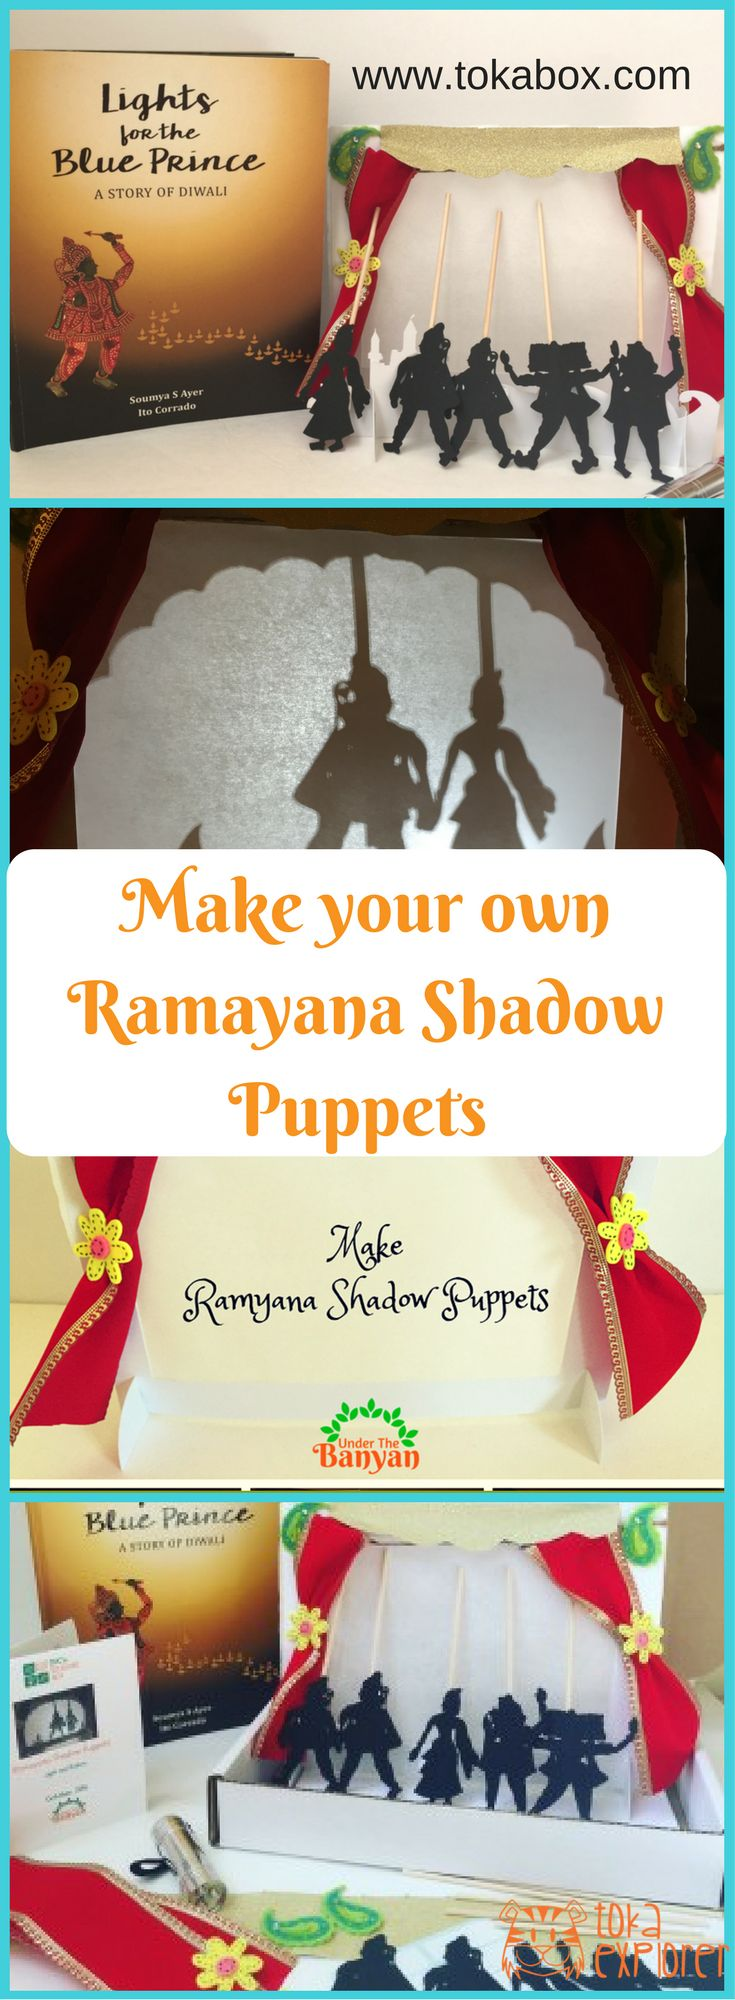 Diwali Craft ideas for kids! Make this super fun Ramayana Shadow puppet and encourage kids to tell the epic in a way they understand best. http://www.tokabox.com/tokaseries#celebrate